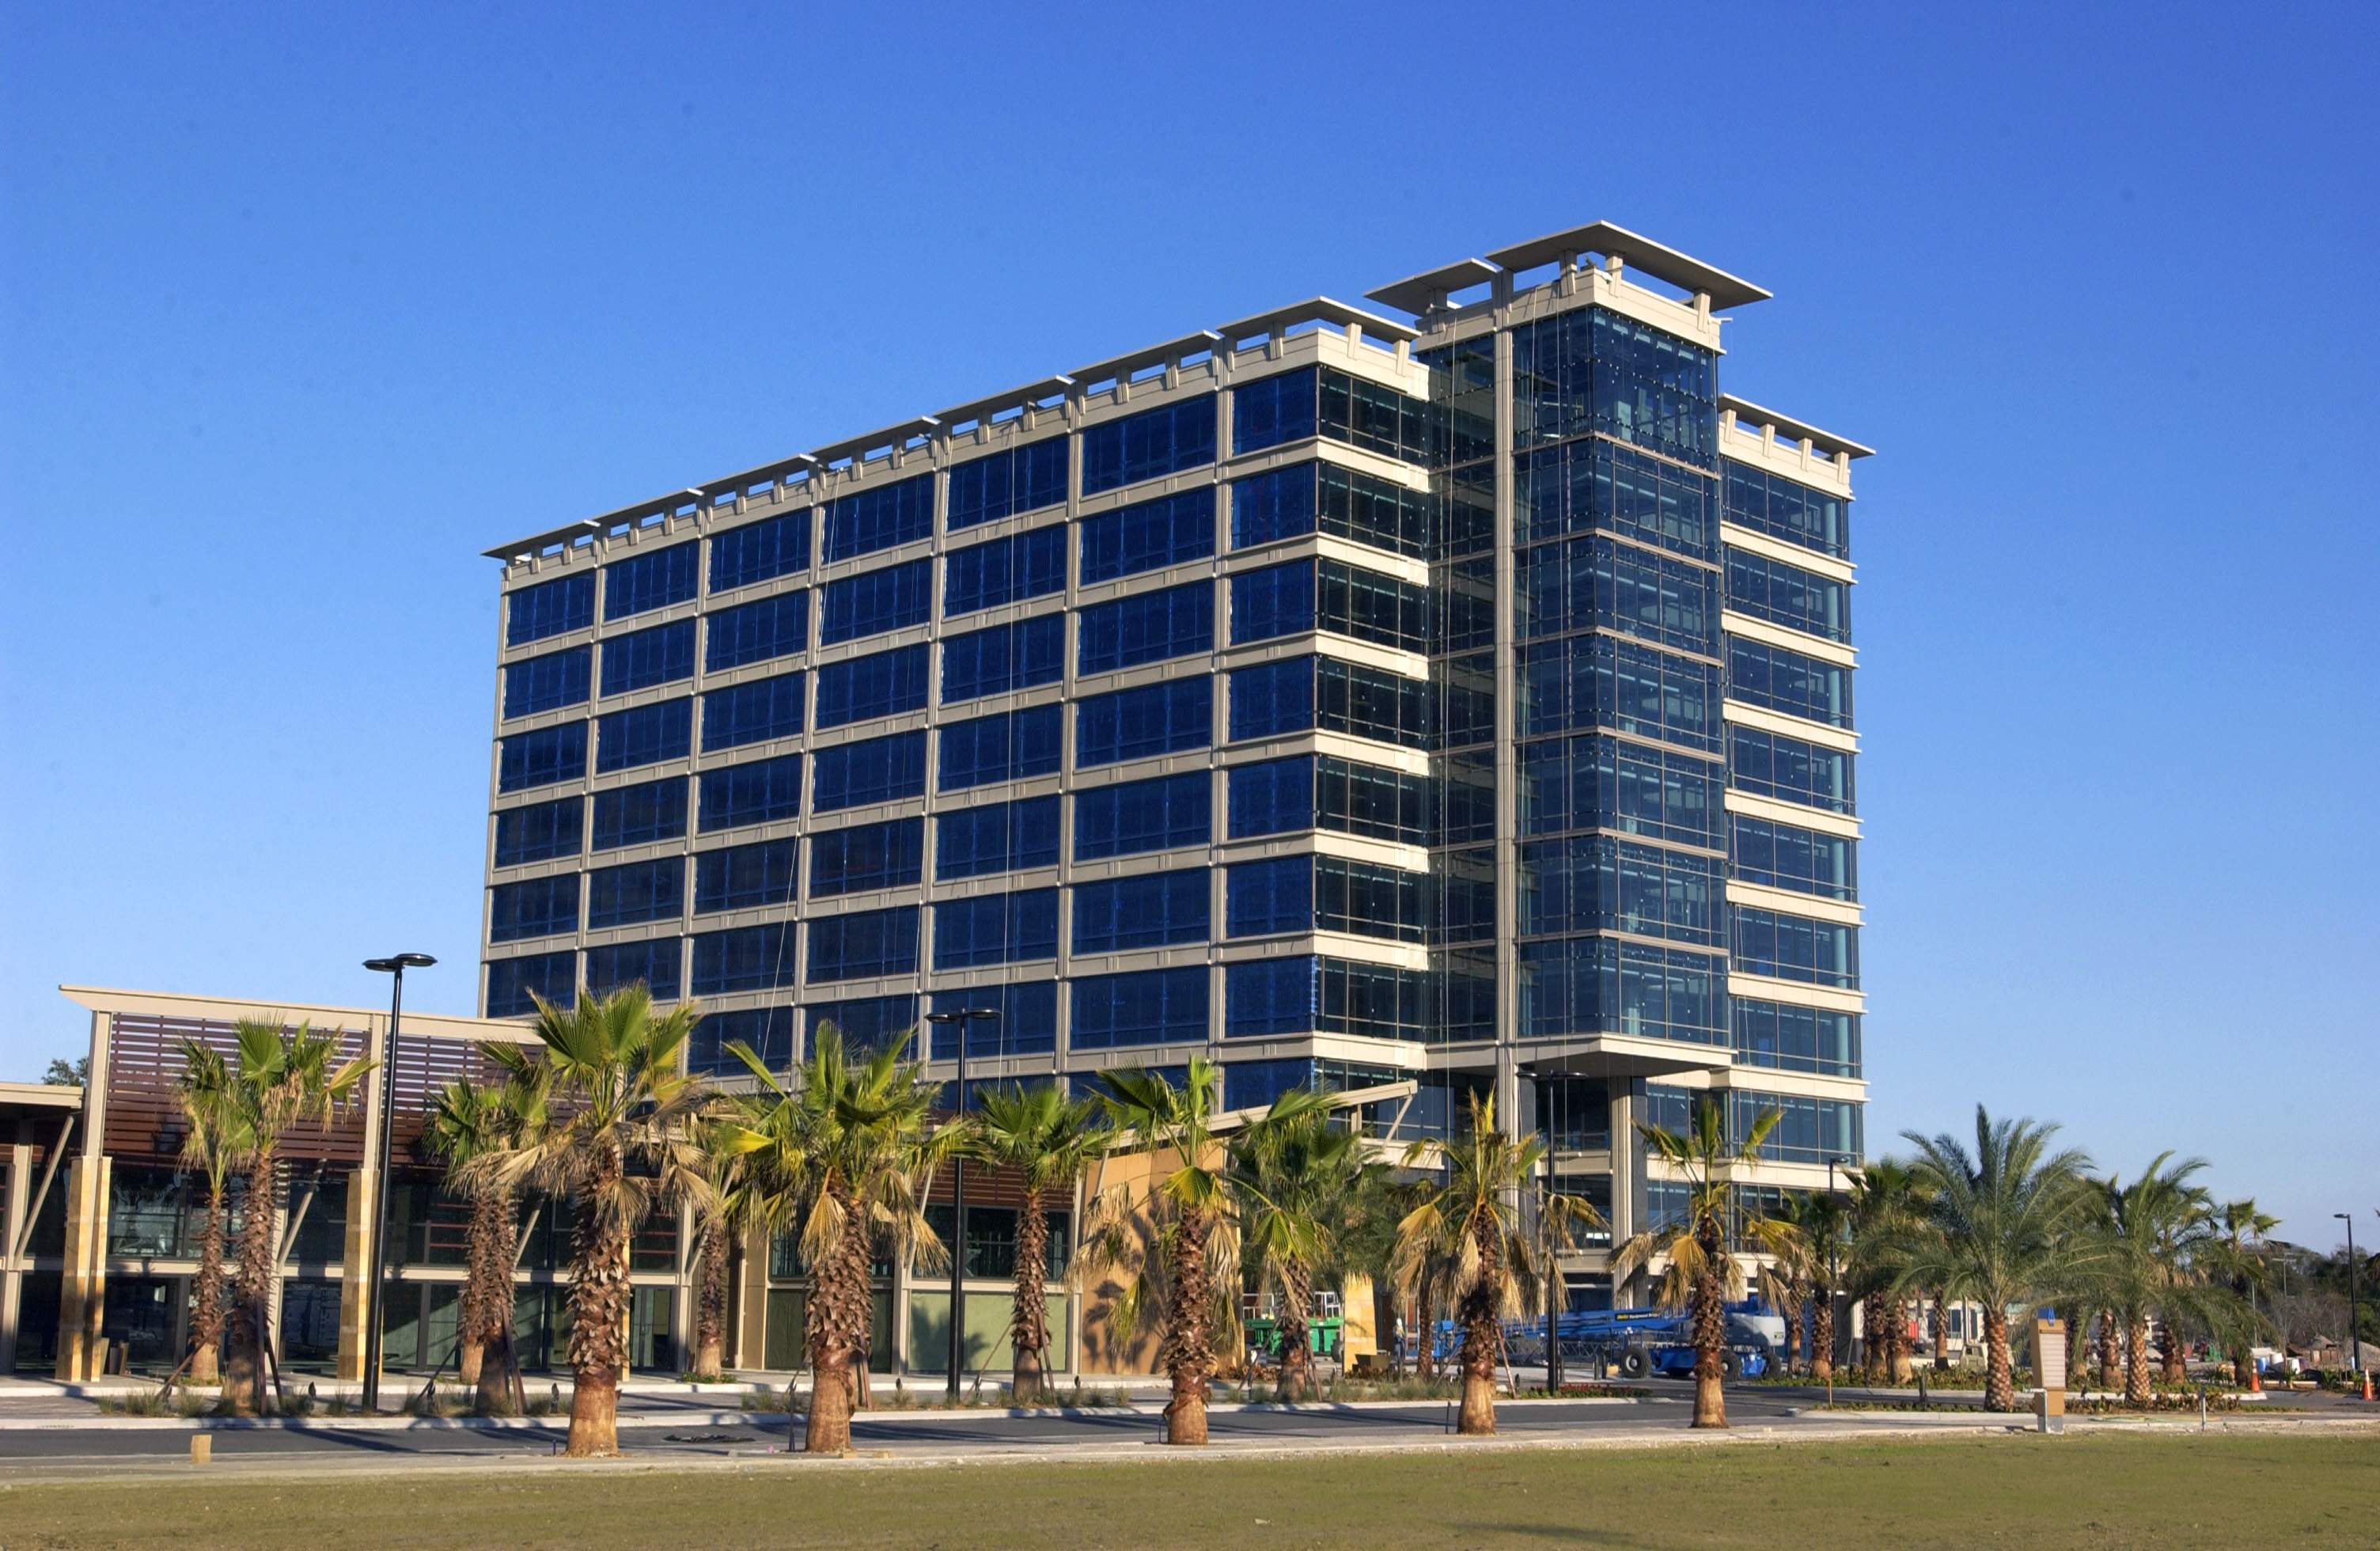 PricewaterhouseCoopers adding 350 new jobs in Tampa Bay